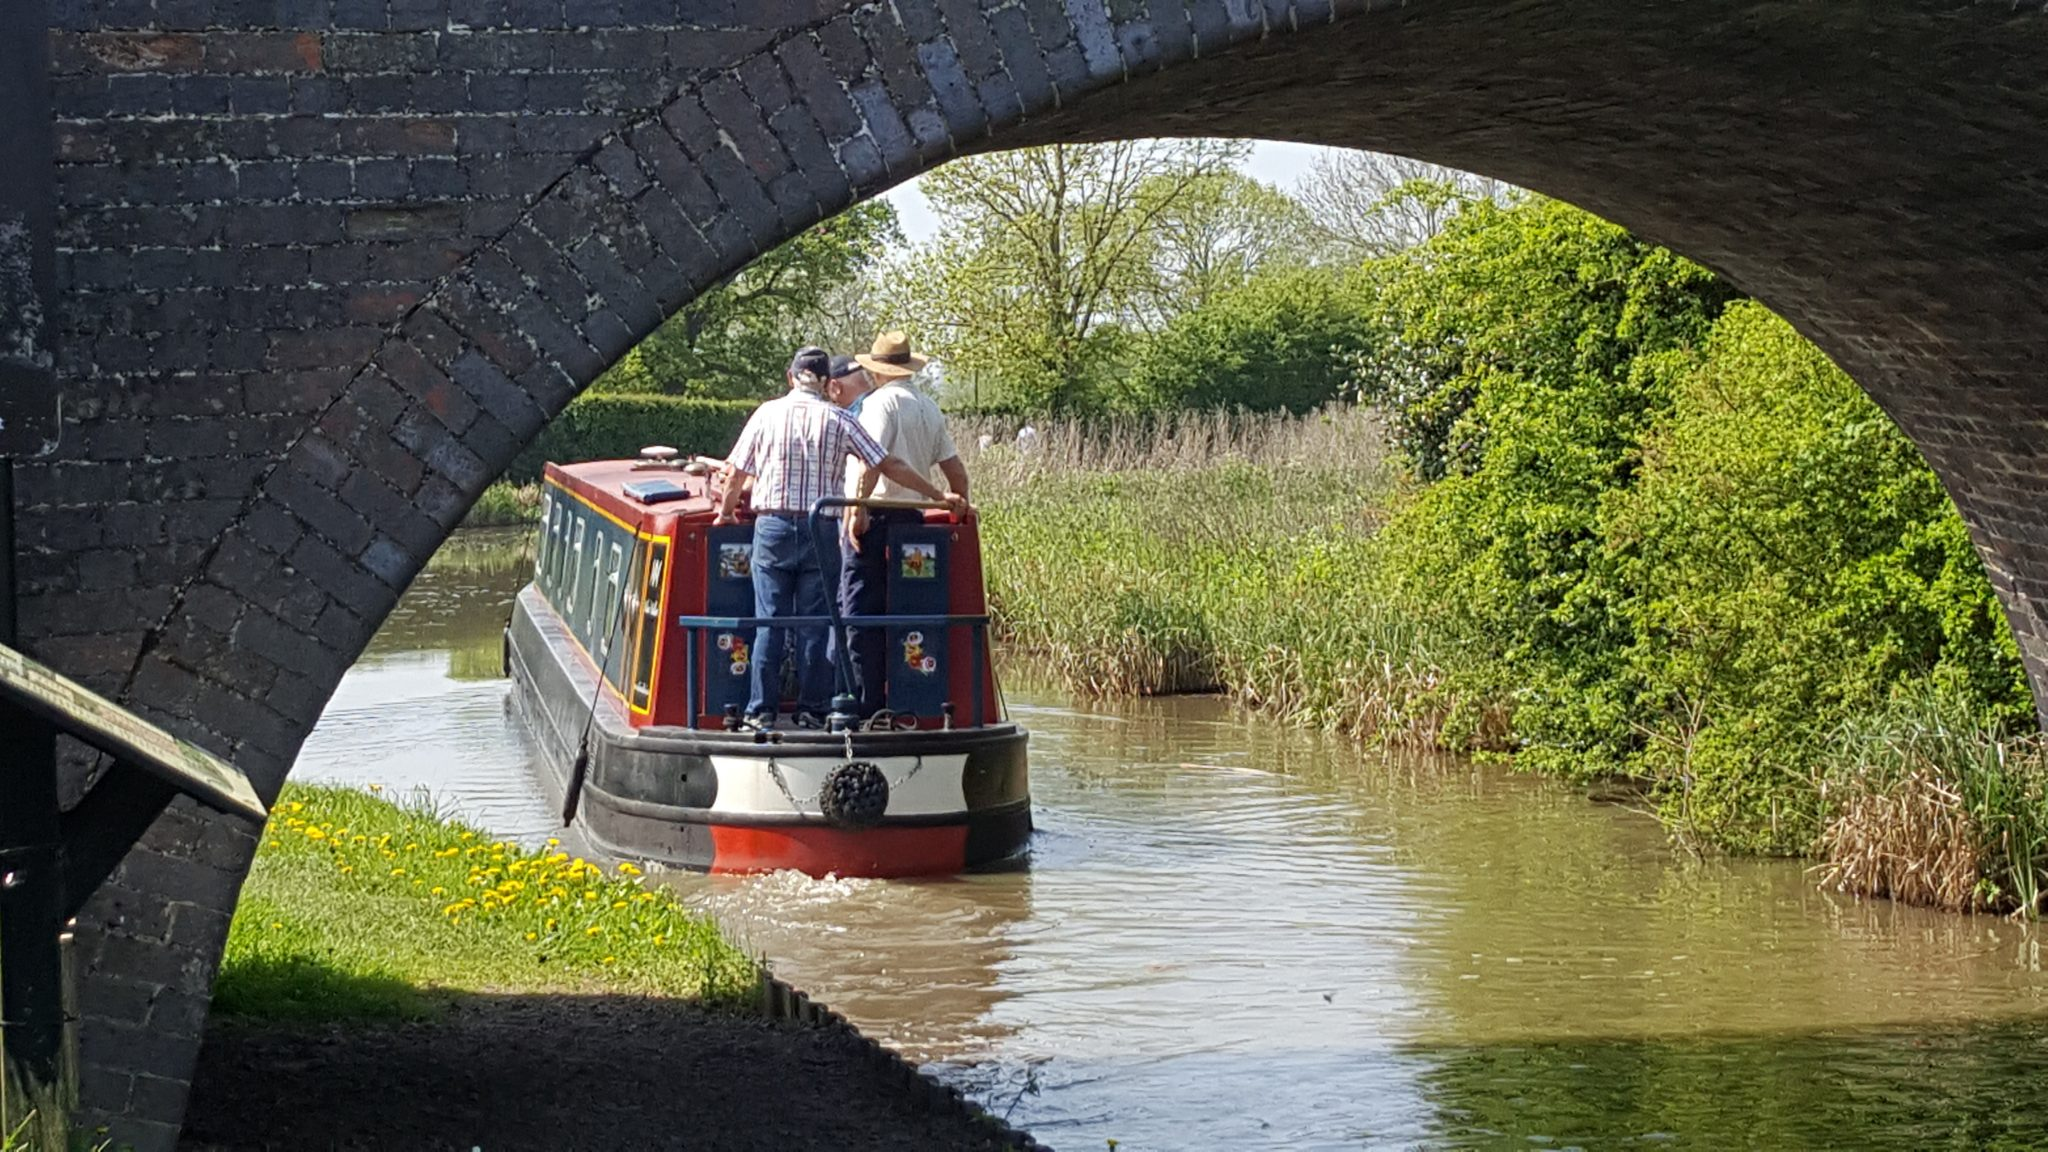 Setting off on a cruise from Bosworth Marina on the Ashby Canal.